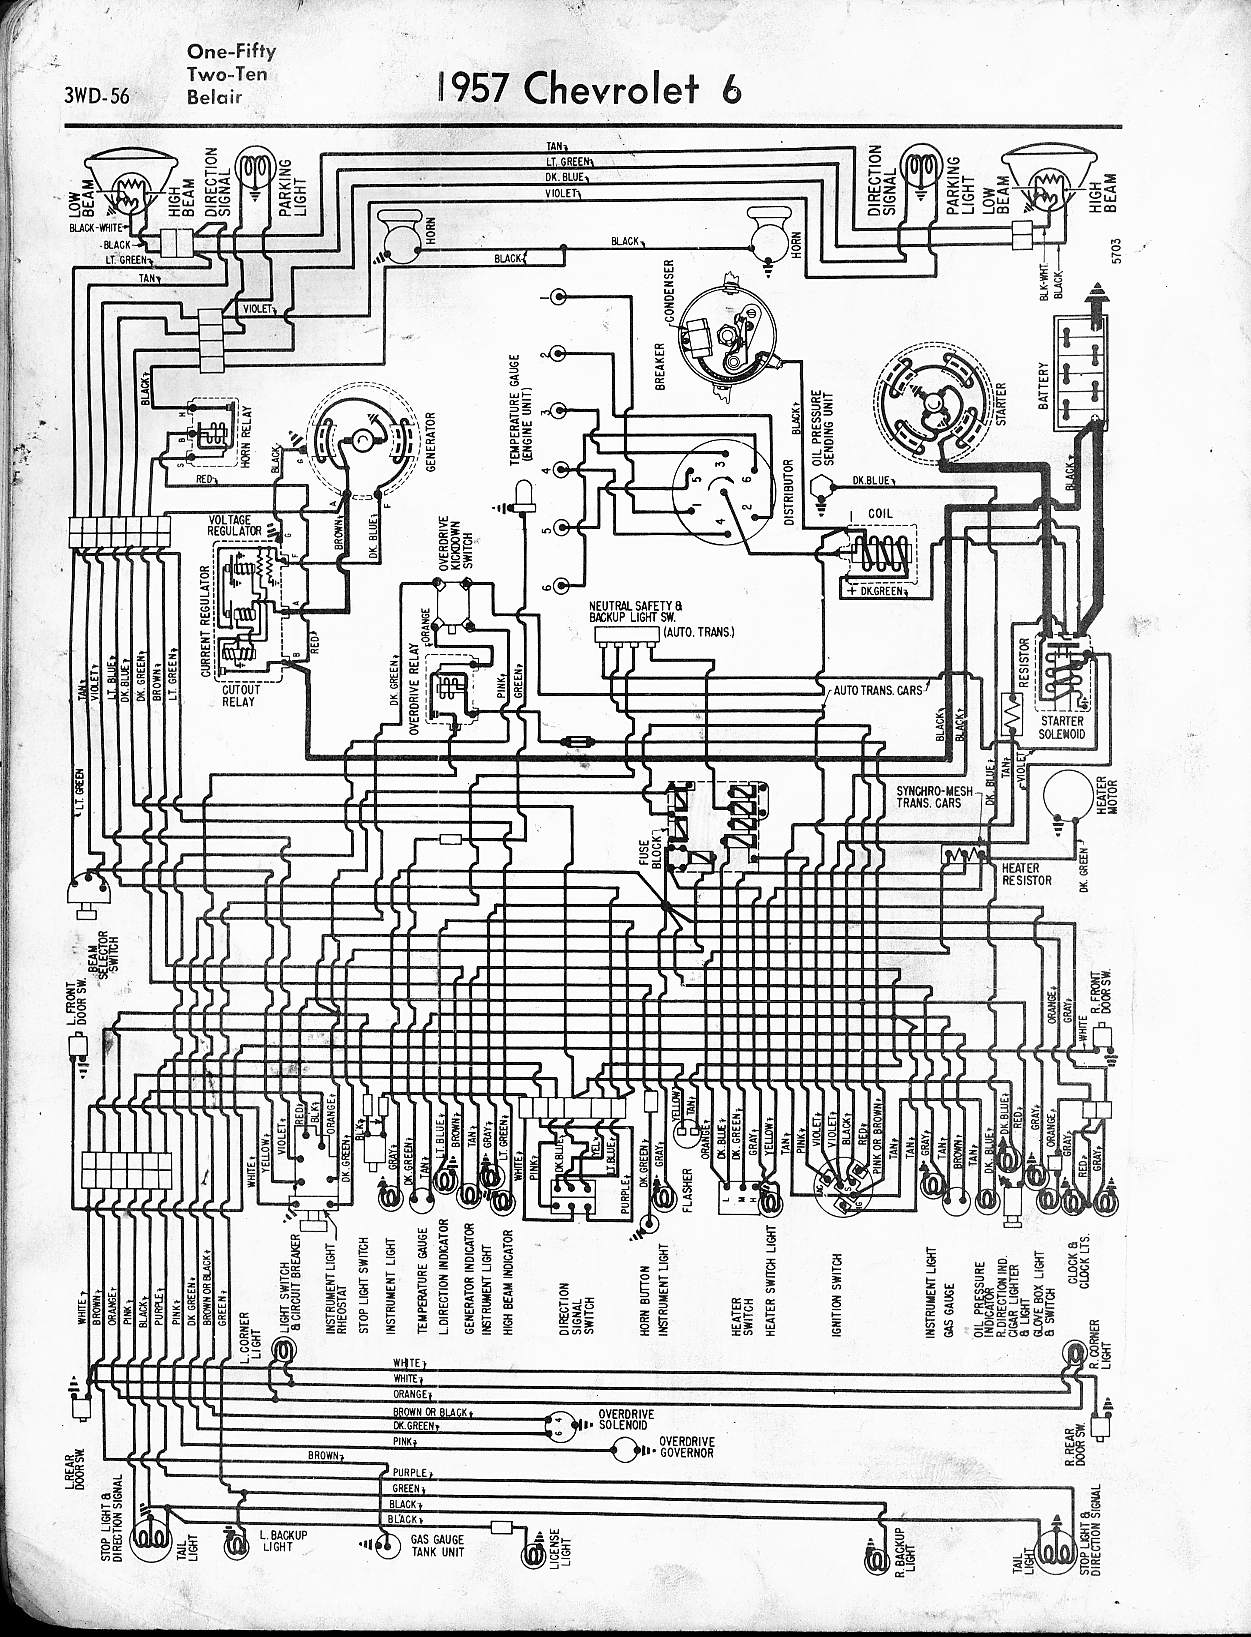 MWireChev57_3WD 056 57 65 chevy wiring diagrams 57 chevy wiring harness at gsmx.co